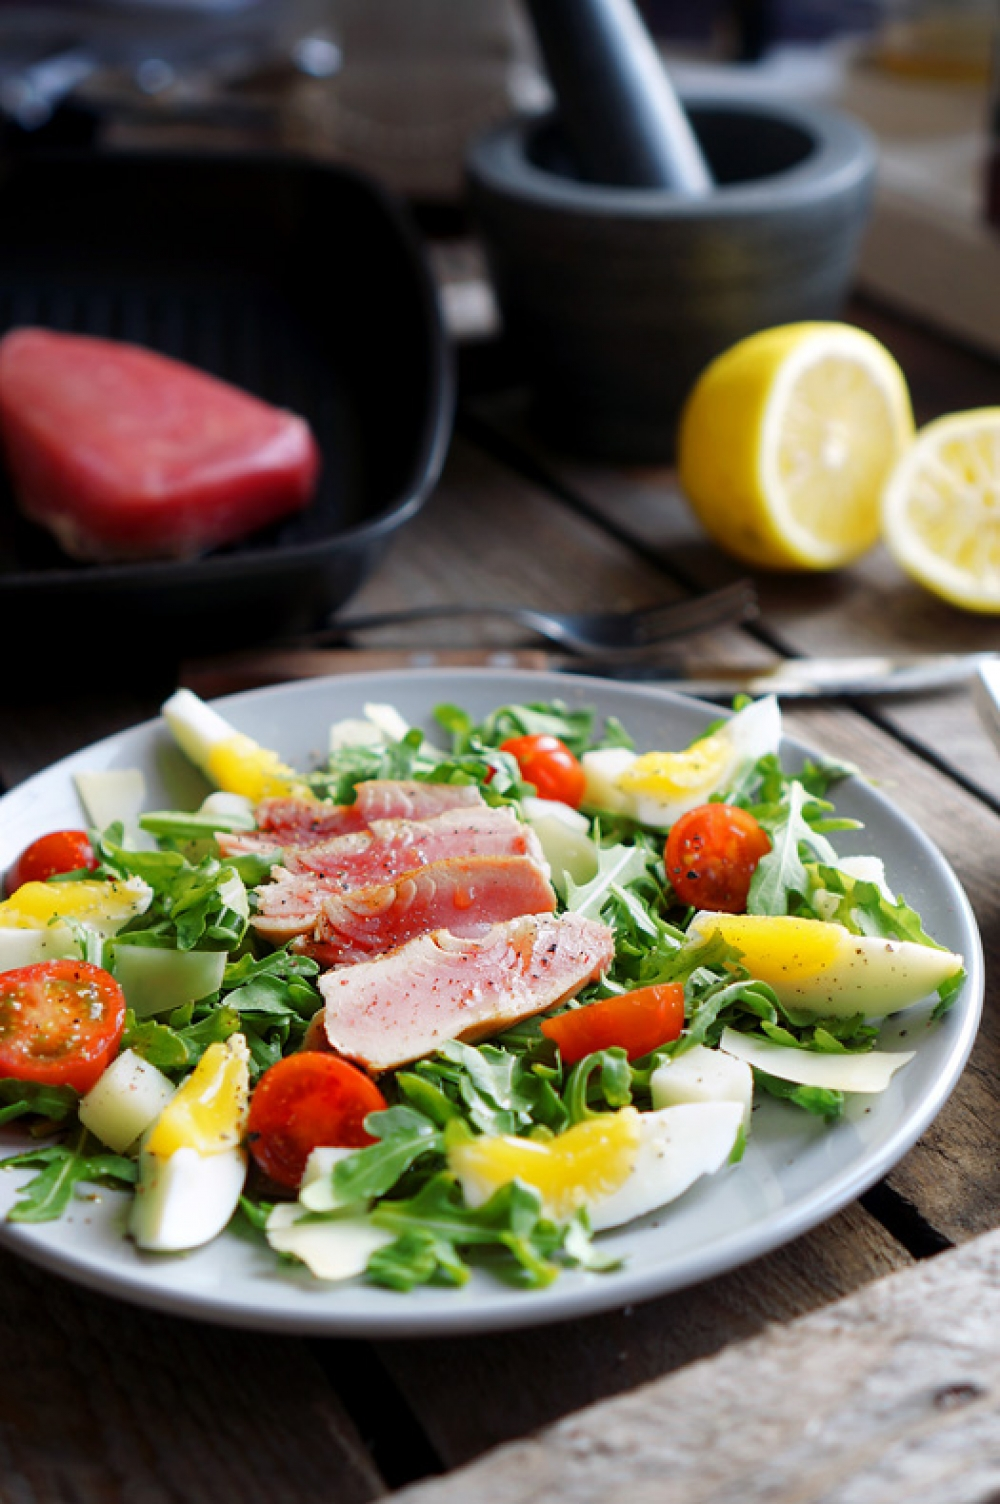 Nicoise Salad with Tuna and Branded Dressing